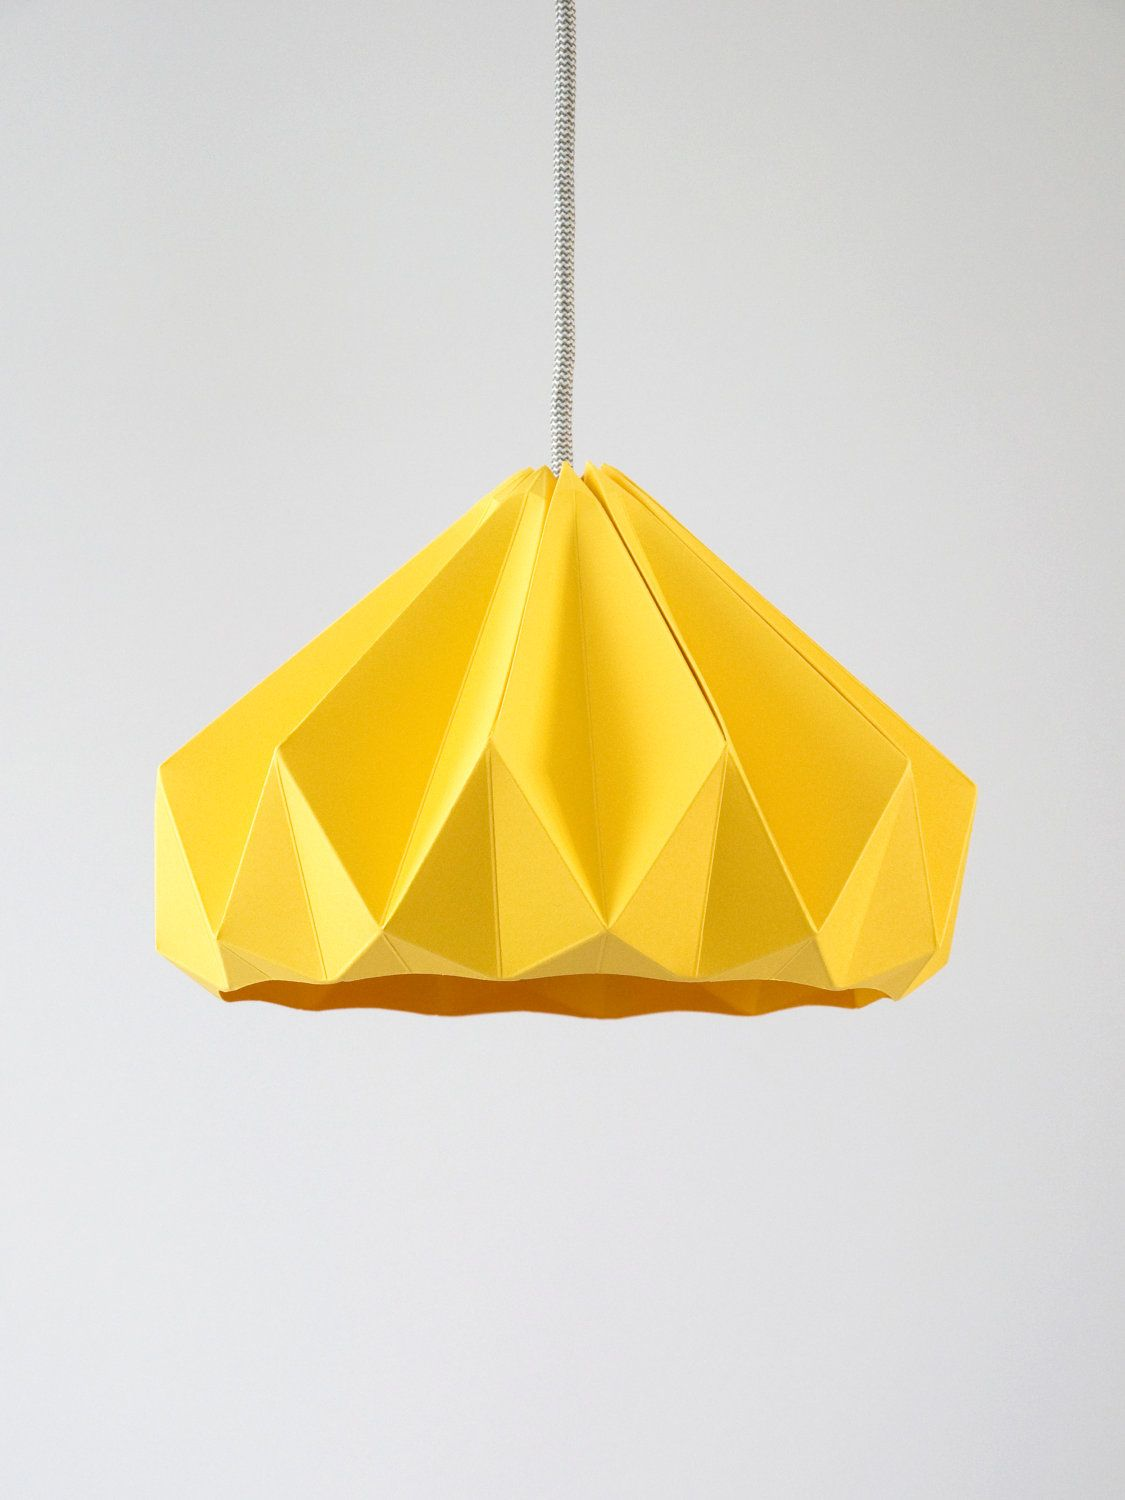 Chestnut origami hanging paper lamp shade pendant light gold chestnut origami hanging paper lamp shade pendant light gold yellow 8900 via mozeypictures Images